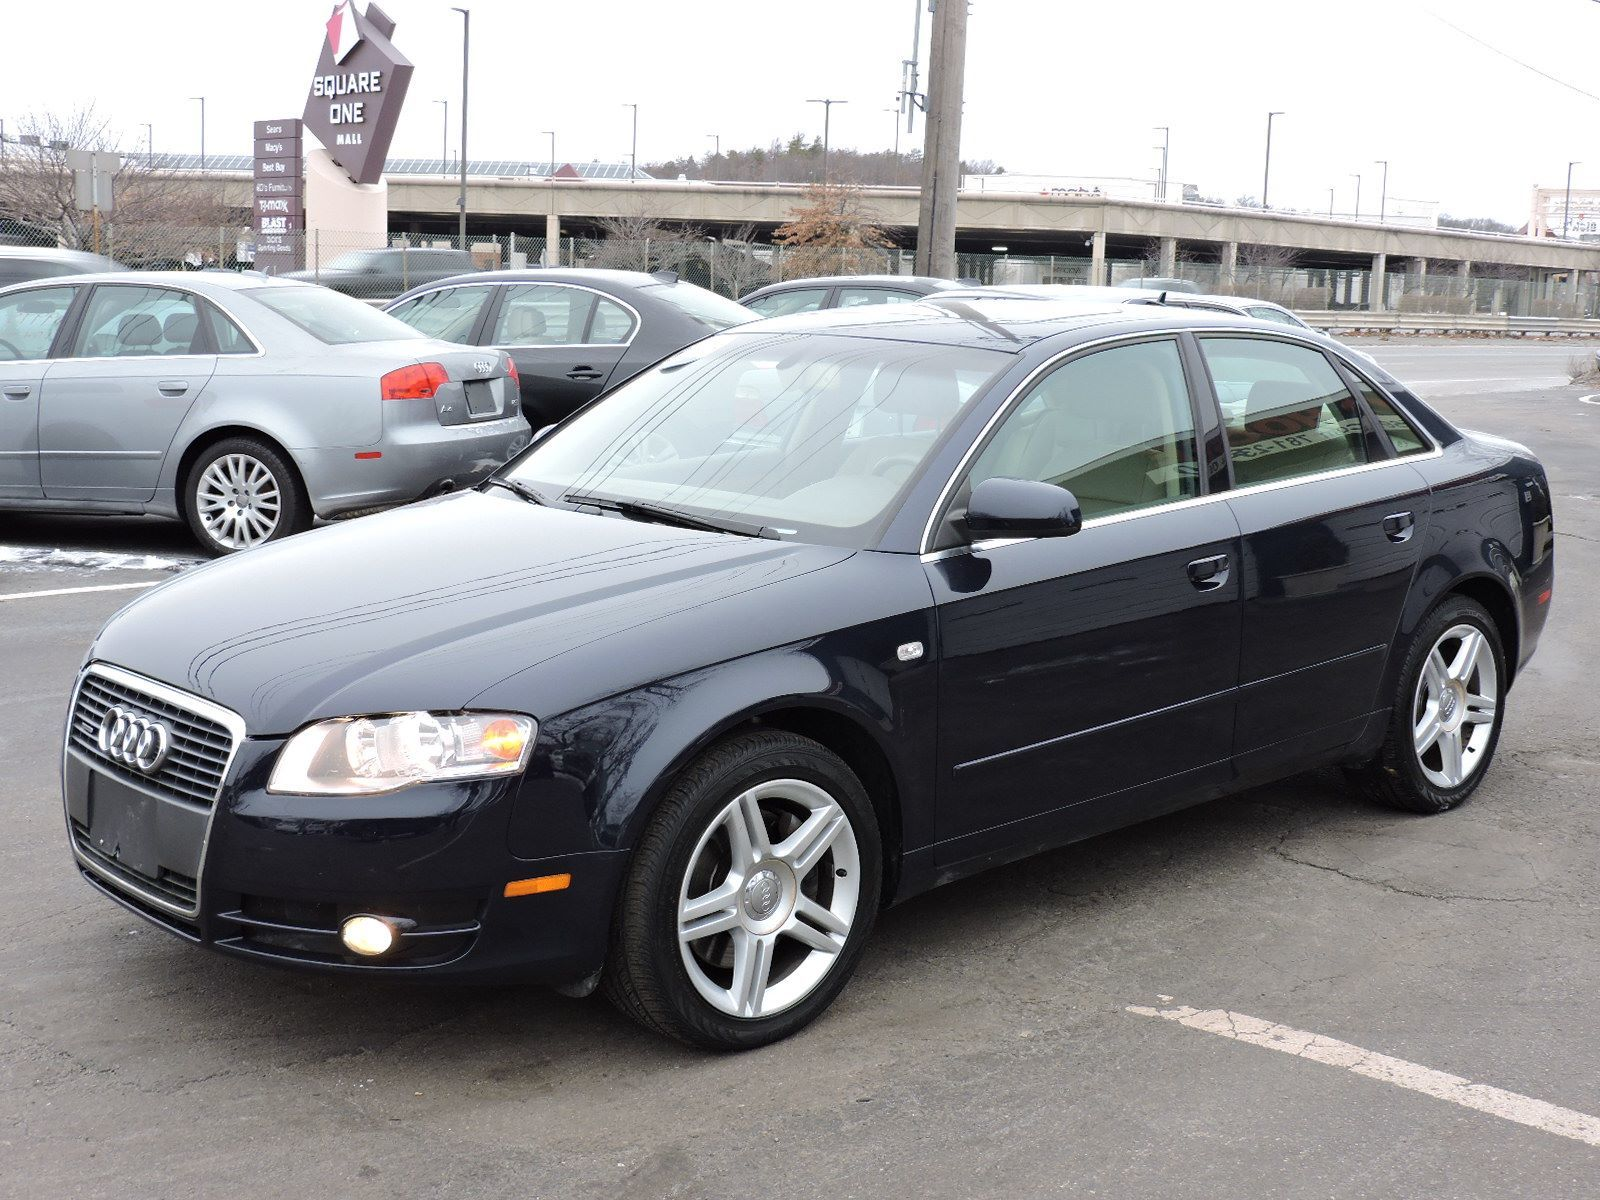 used 2006 audi a4 2.0t at auto house usa saugus